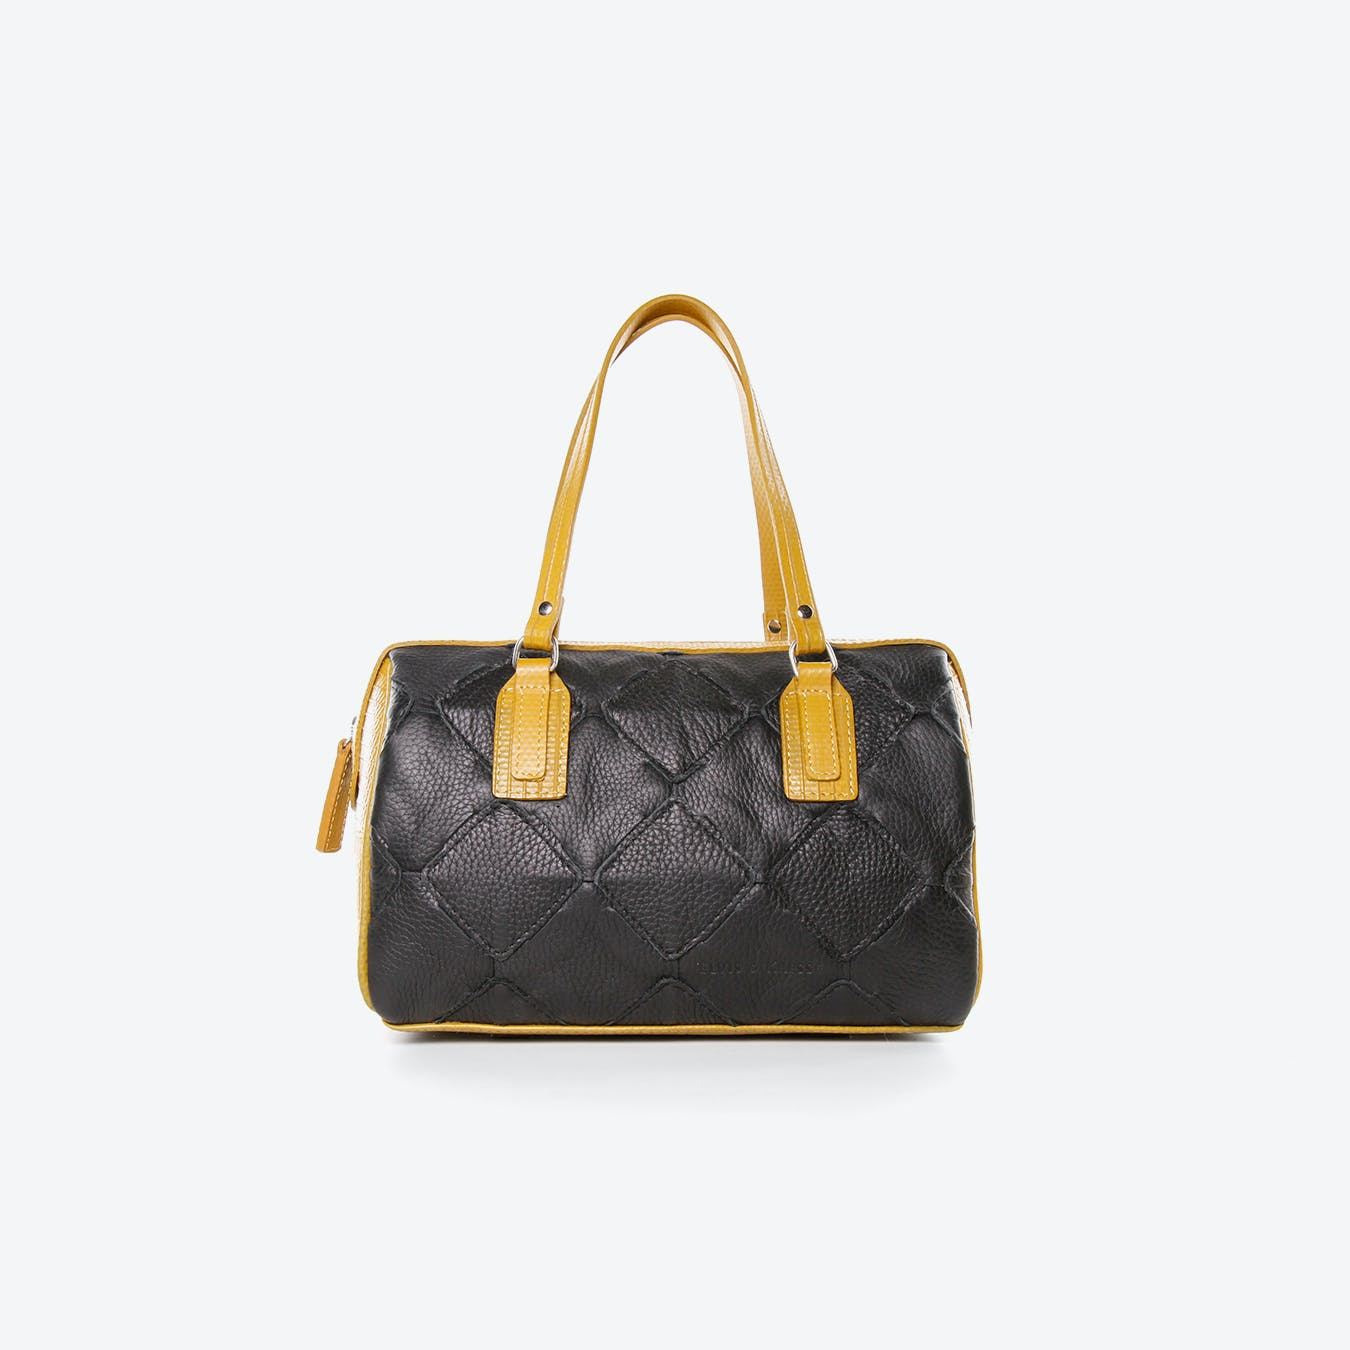 Post Bag  Fire Hide in Black Burberry Leather And Yellow Fire-Hoses